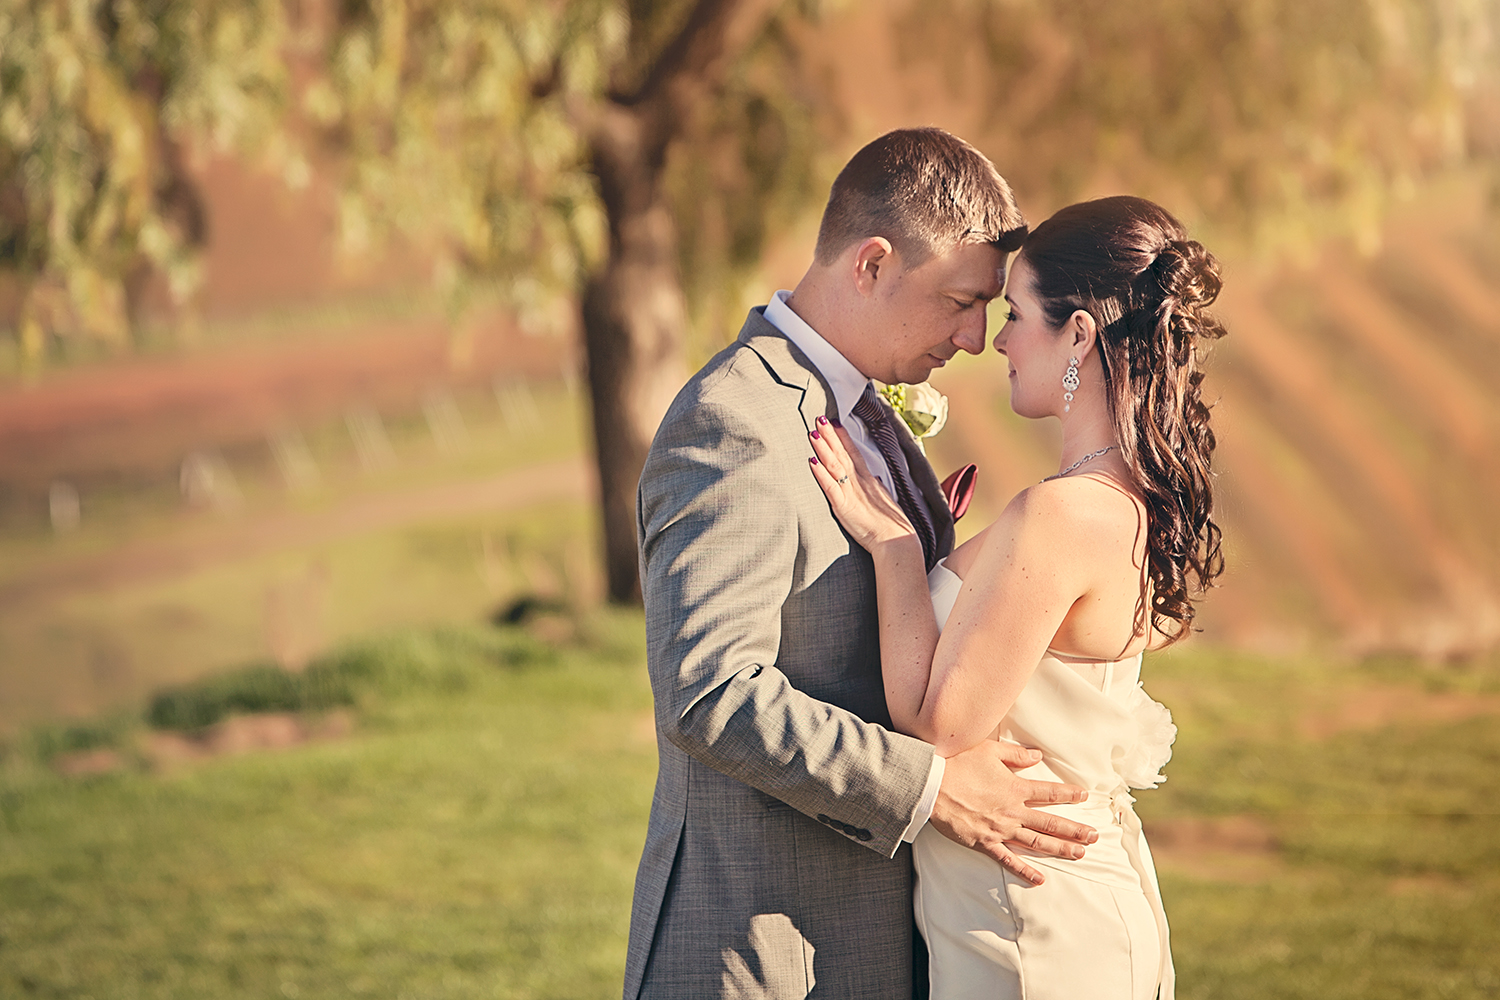 Dena_Rooney_Wedding_Photographer_Poppy_Ridge_003.jpg